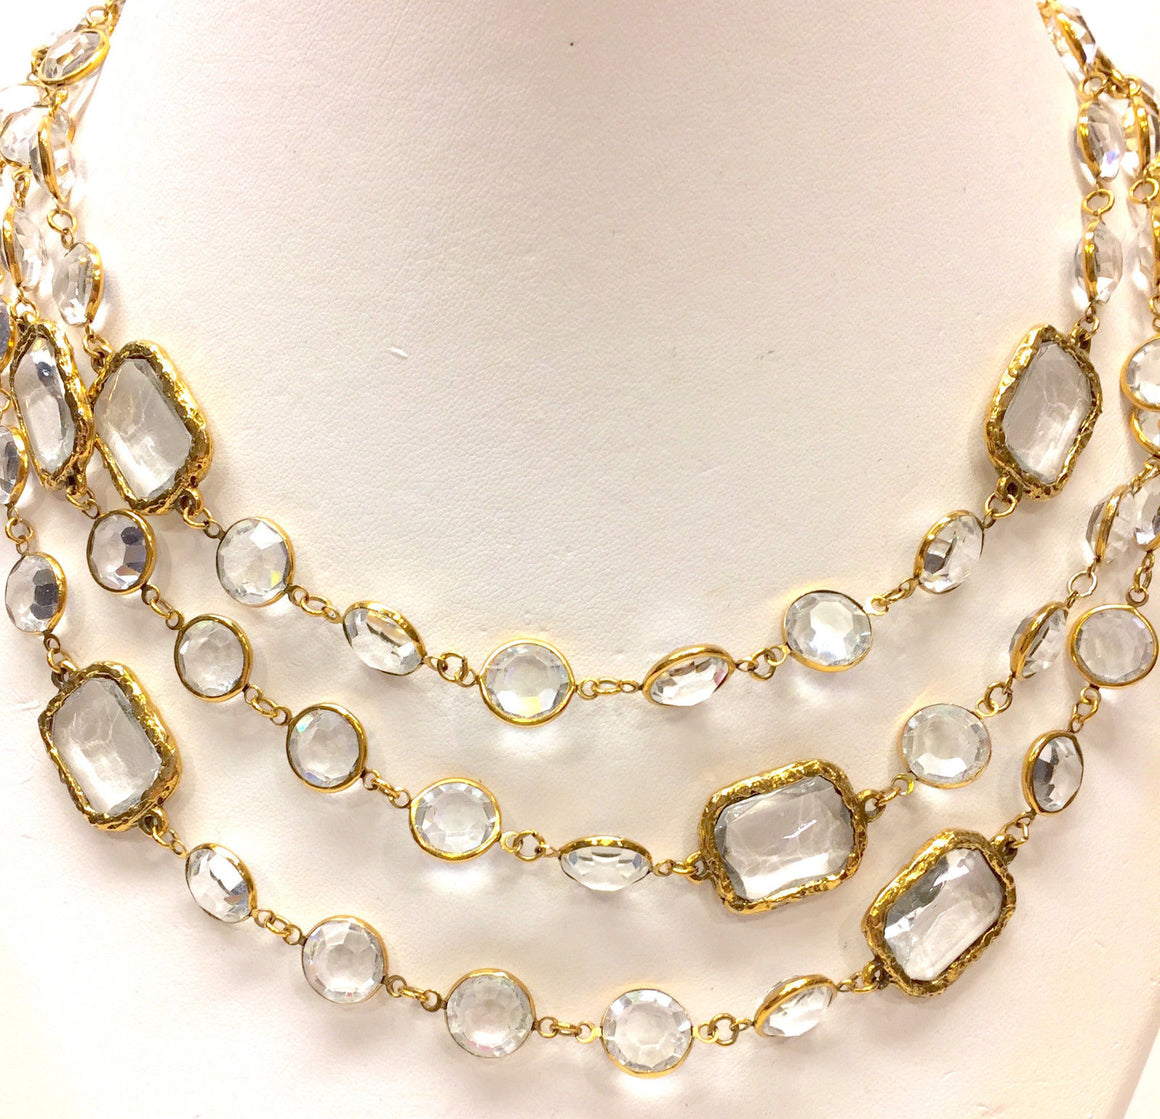 CHANEL Vintage 1981 Gilt Metal Clear Crystal Chicklet Necklace